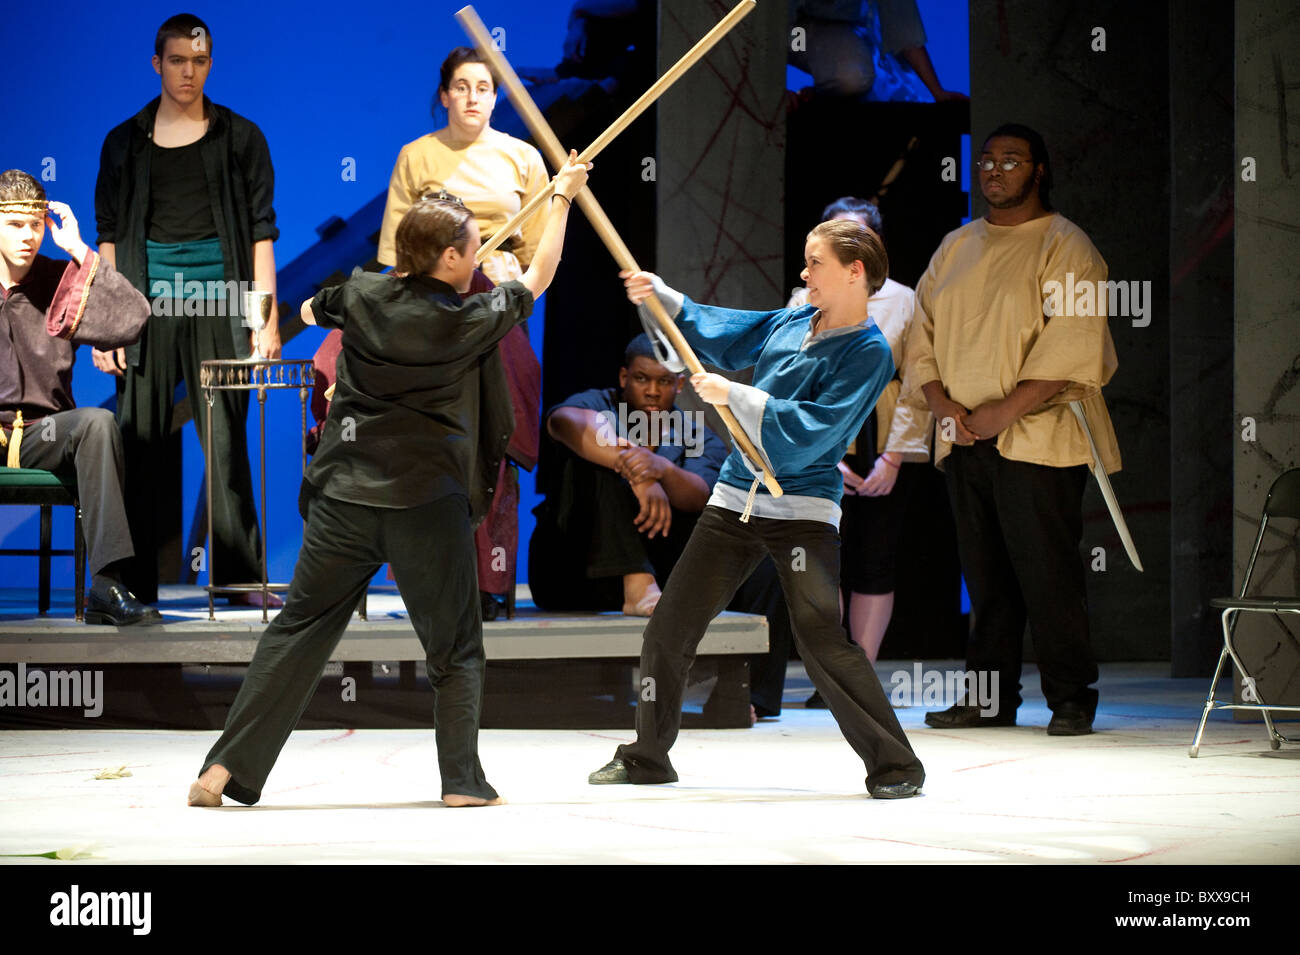 Students on stage during their school production of Shakespeare's classic play, Hamlet., at Lyndon Baines Johnson - Stock Image